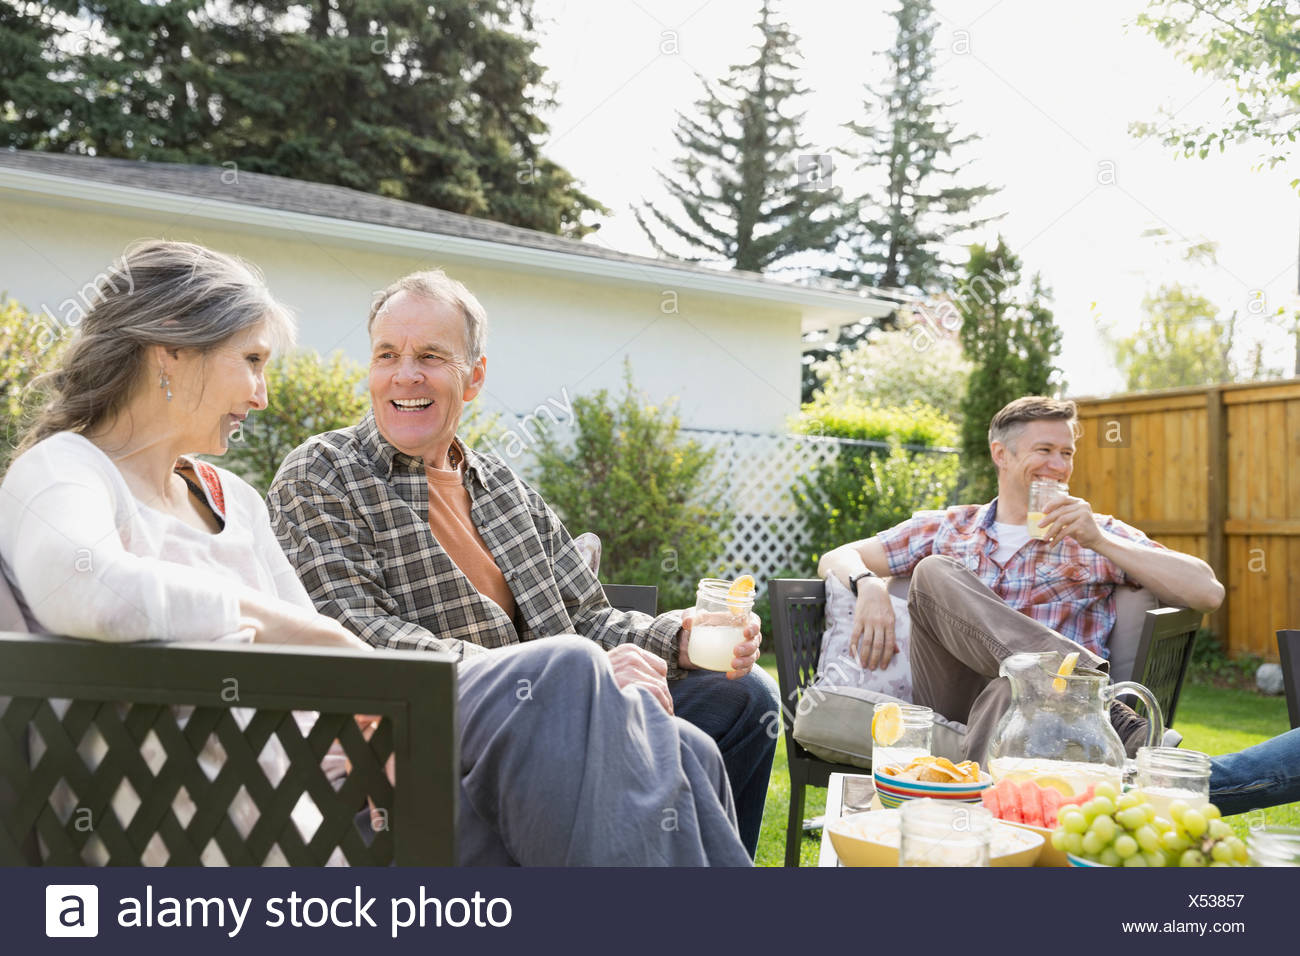 Senior couple relaxing in backyard - Stock Image